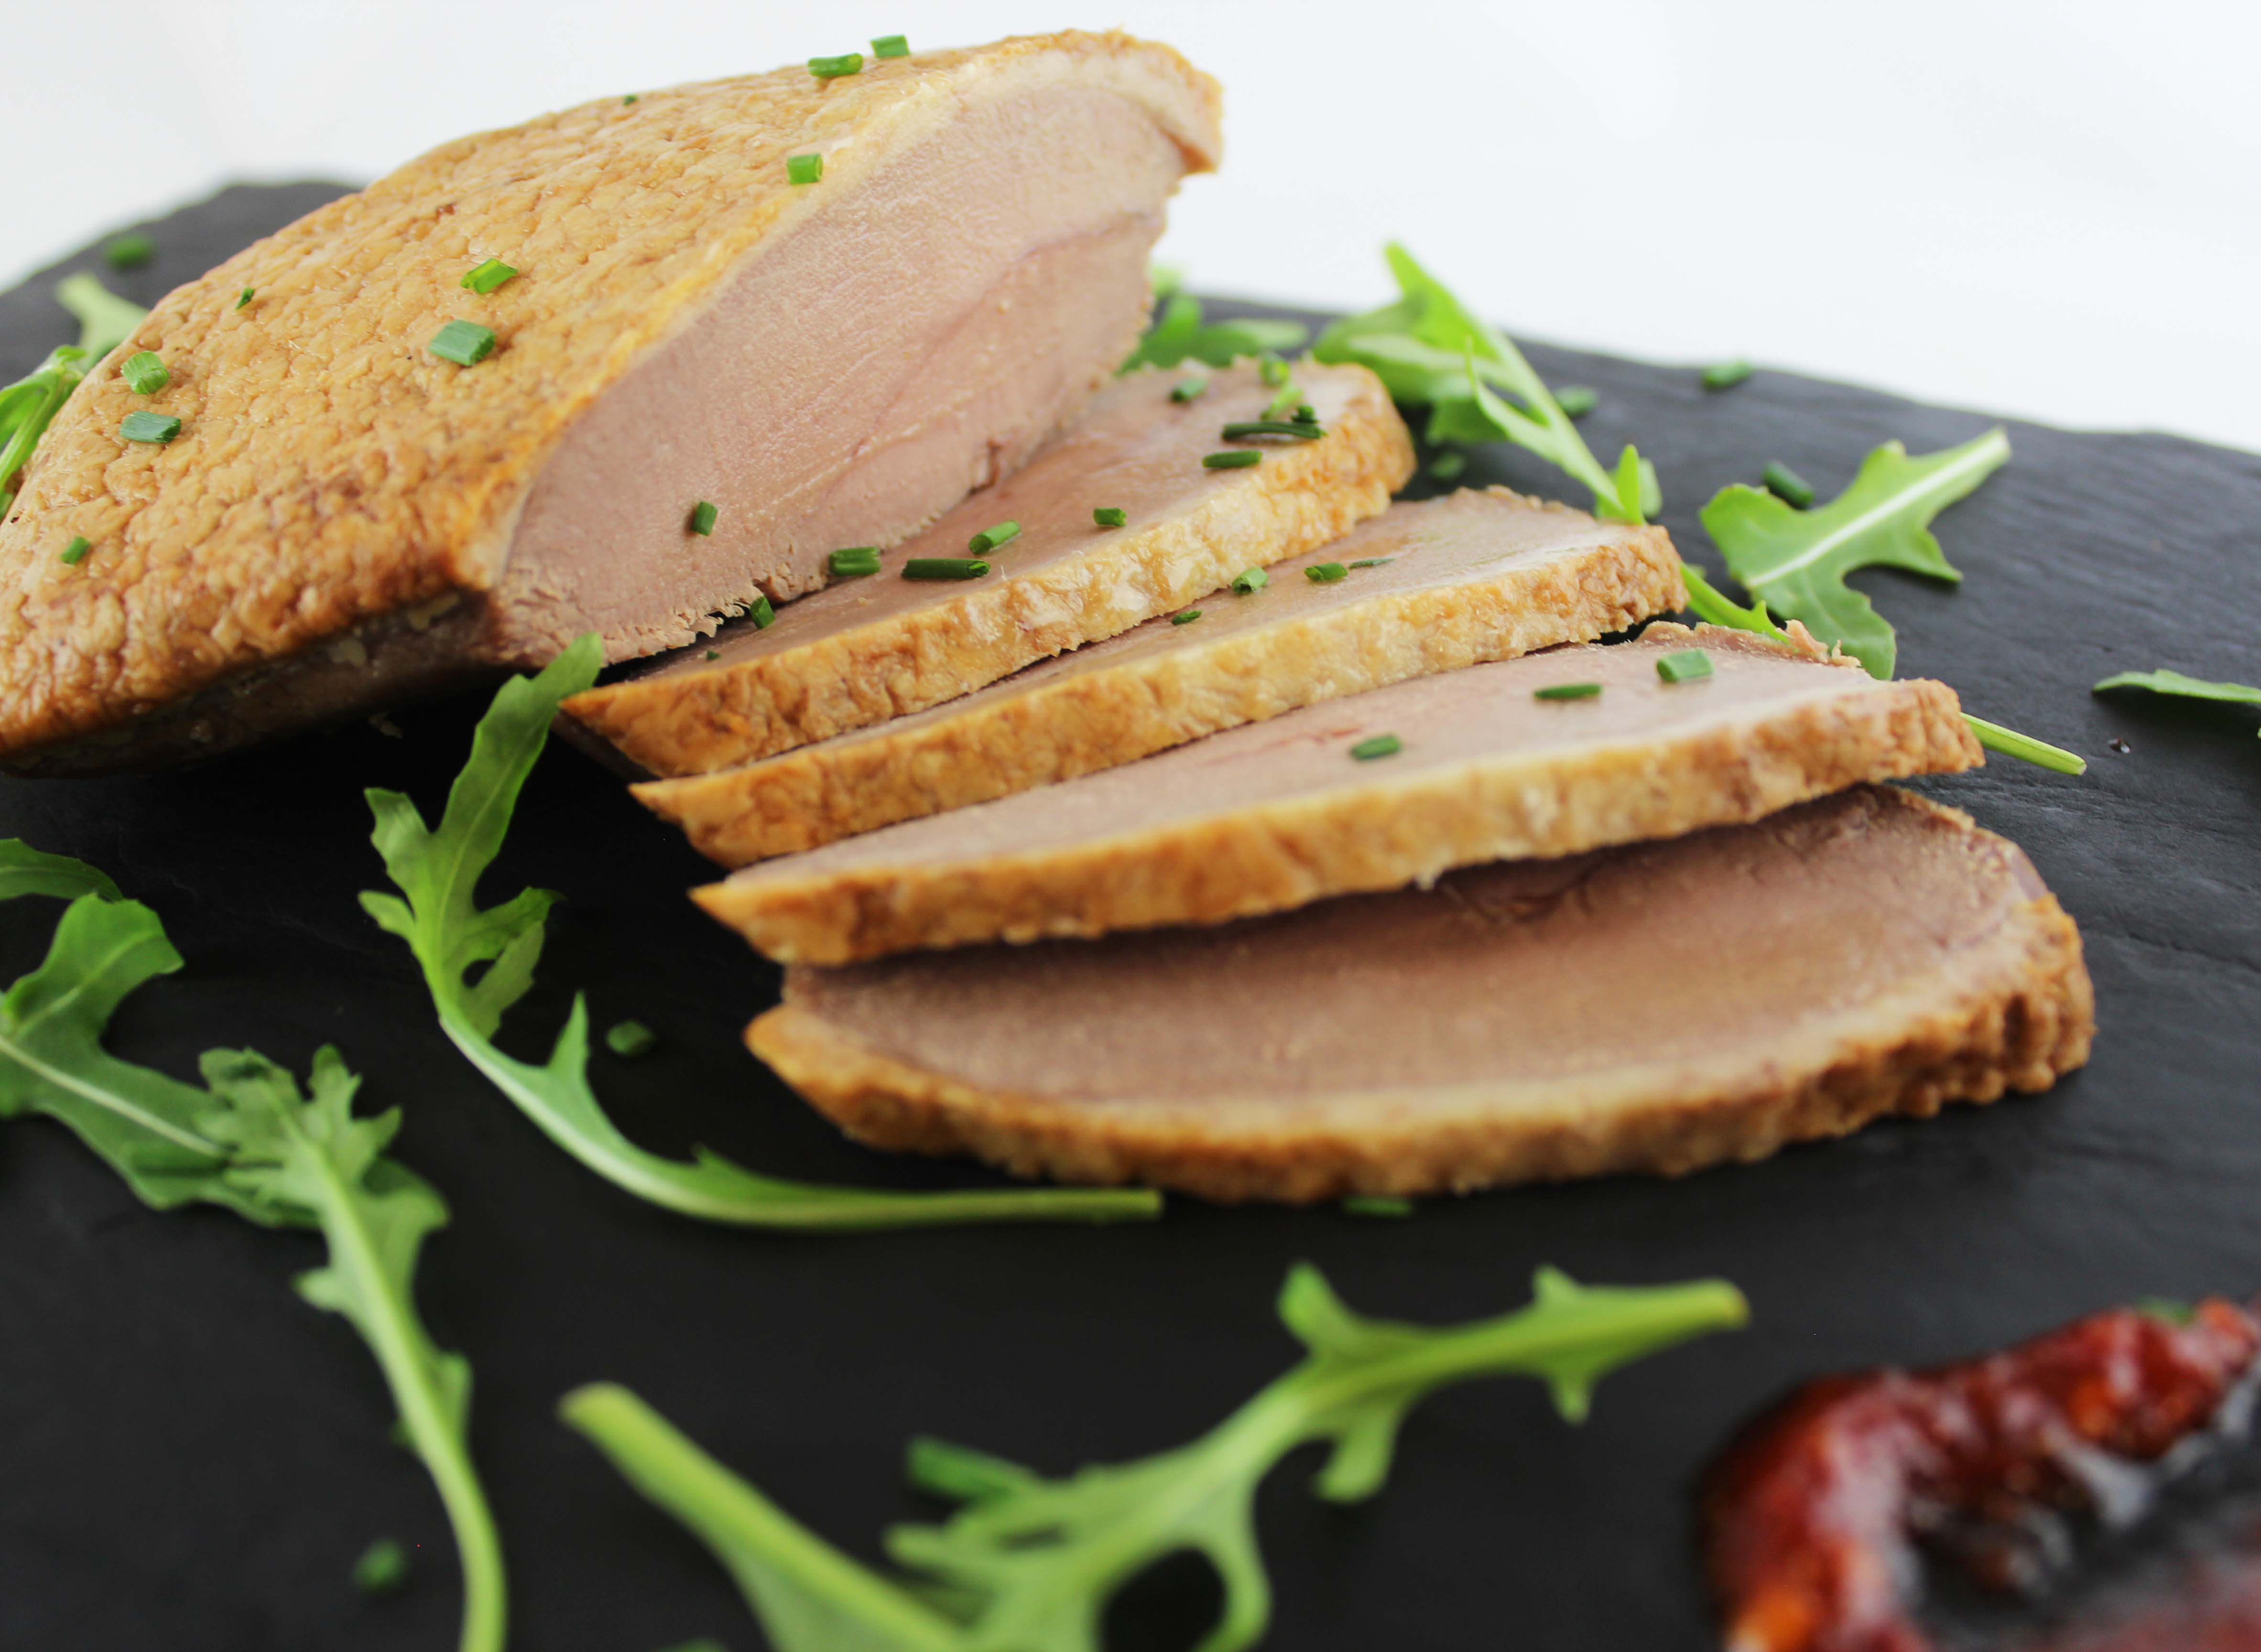 Whole Foods Duck Pate